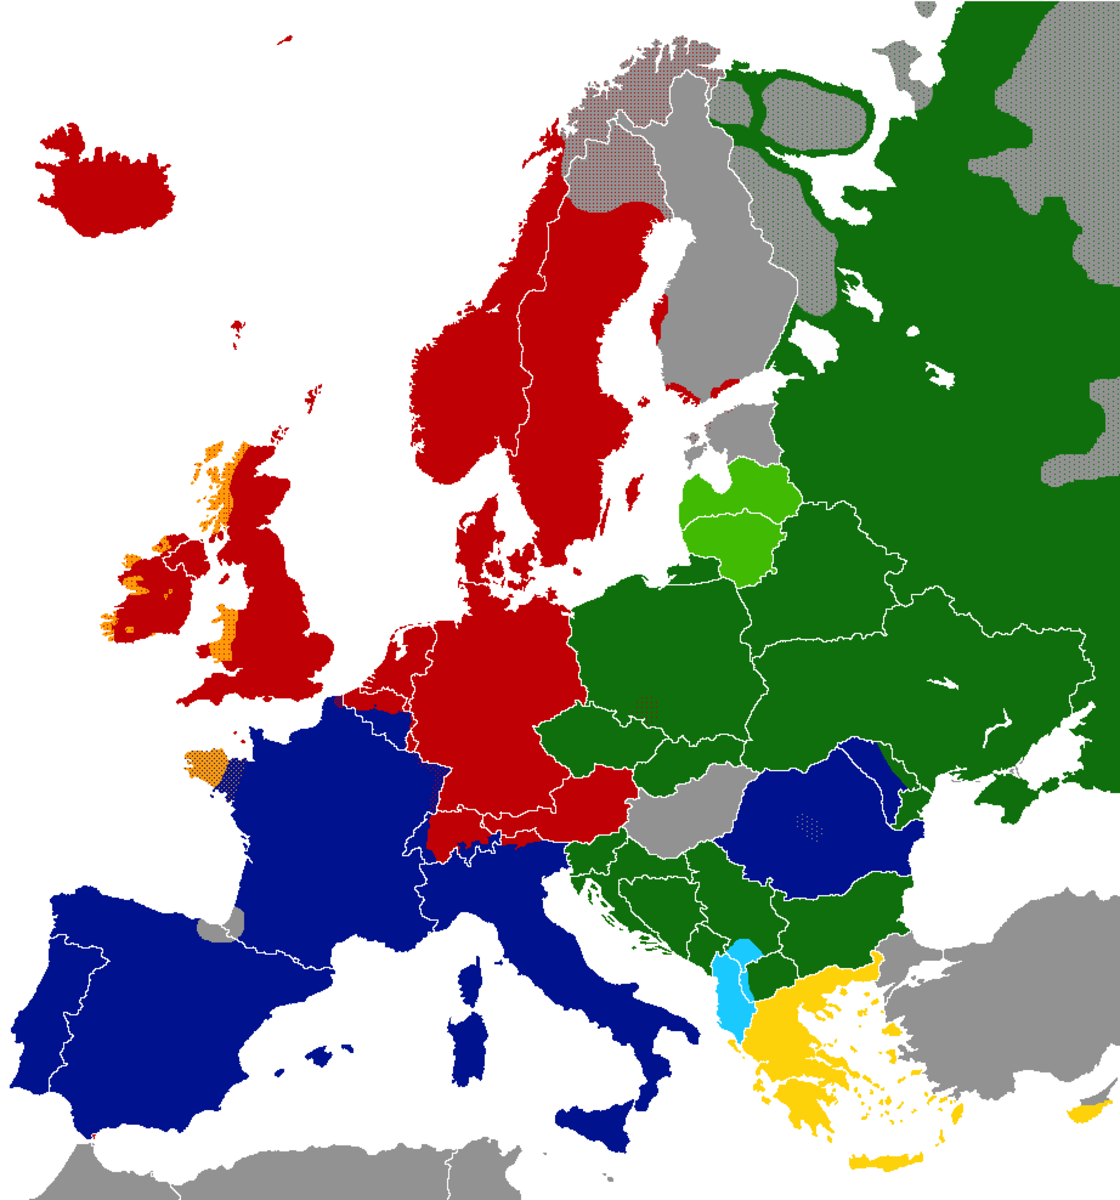 Although in international terms Europe is relatively linguistically poor, it still has a very large number of languages. This map actually underestimates it.